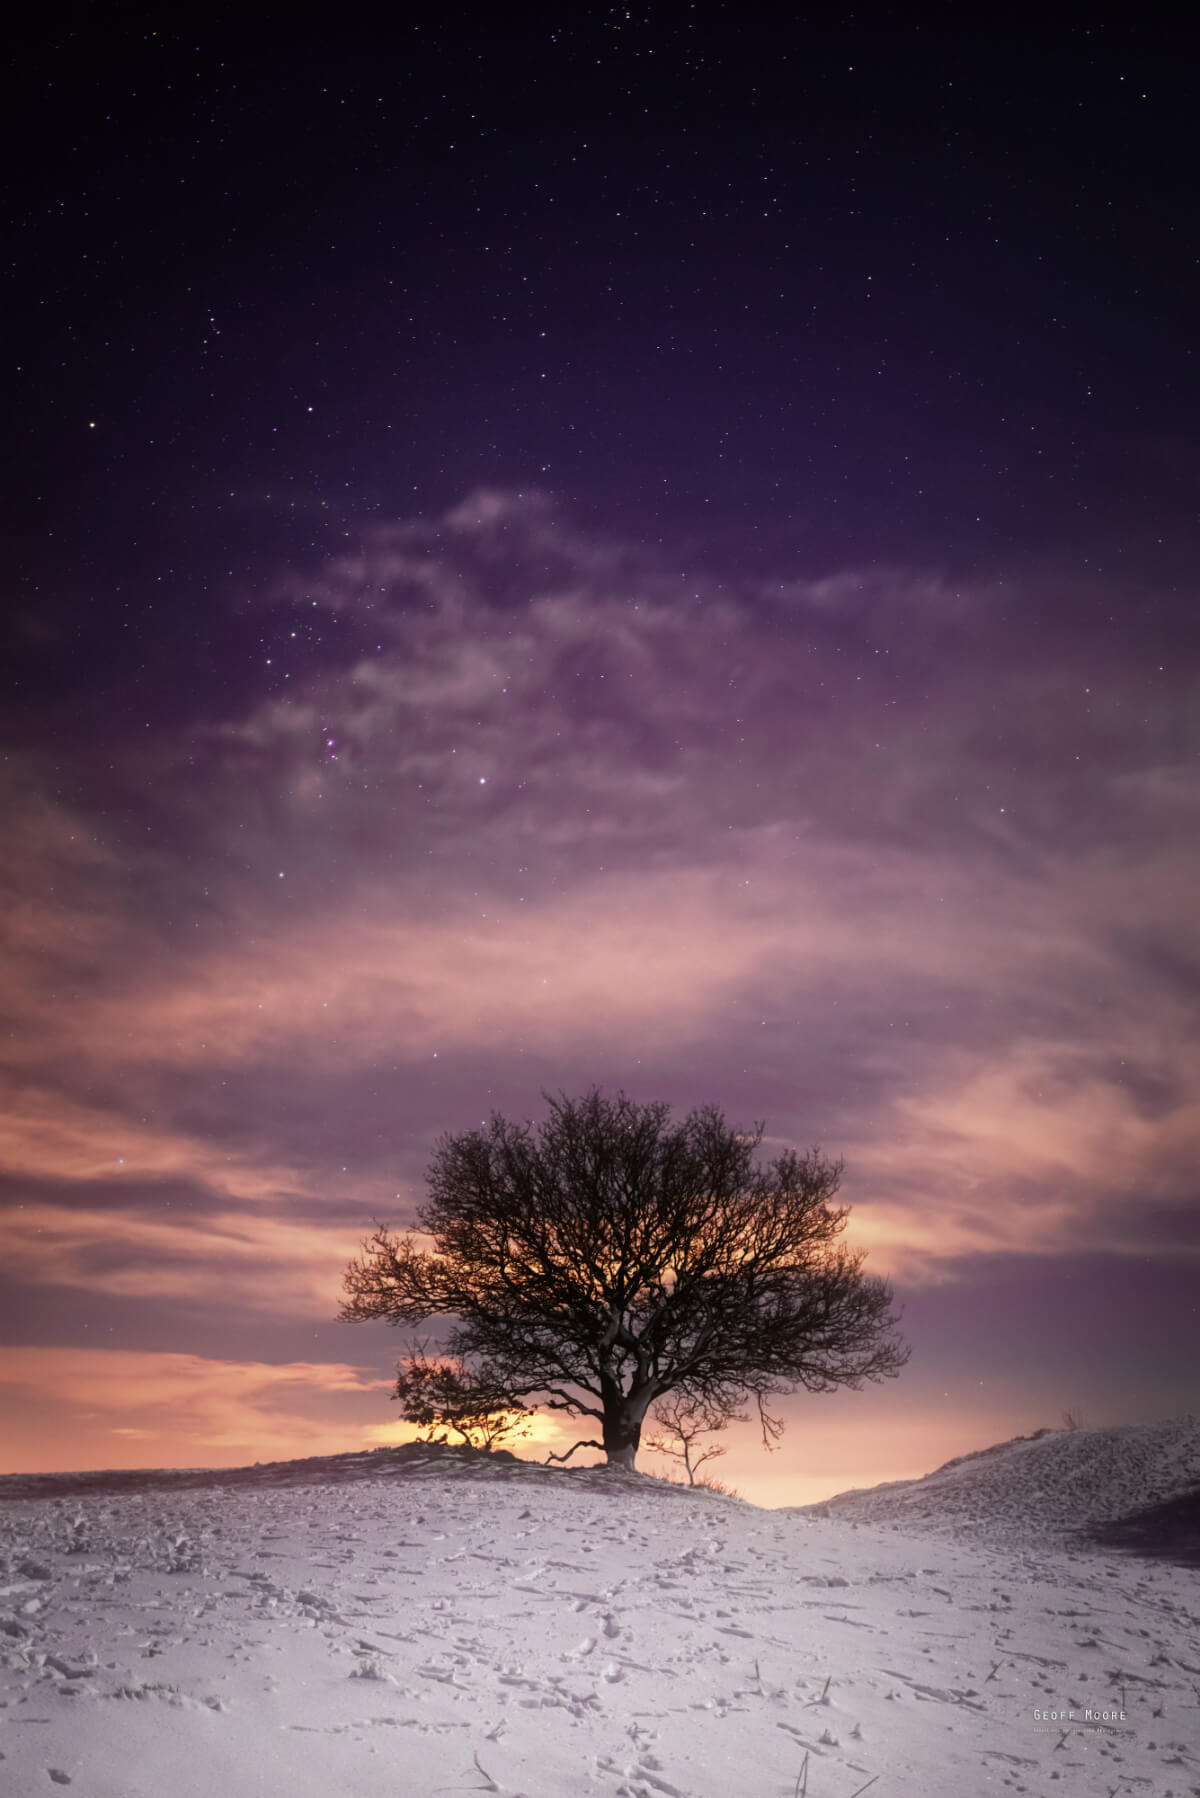 On a cold winters night on top of the Malvern Hills a lone tree looks out to the constellation of Orion; as the moonlight of a quarter moon illuminates the snowy landscape below.